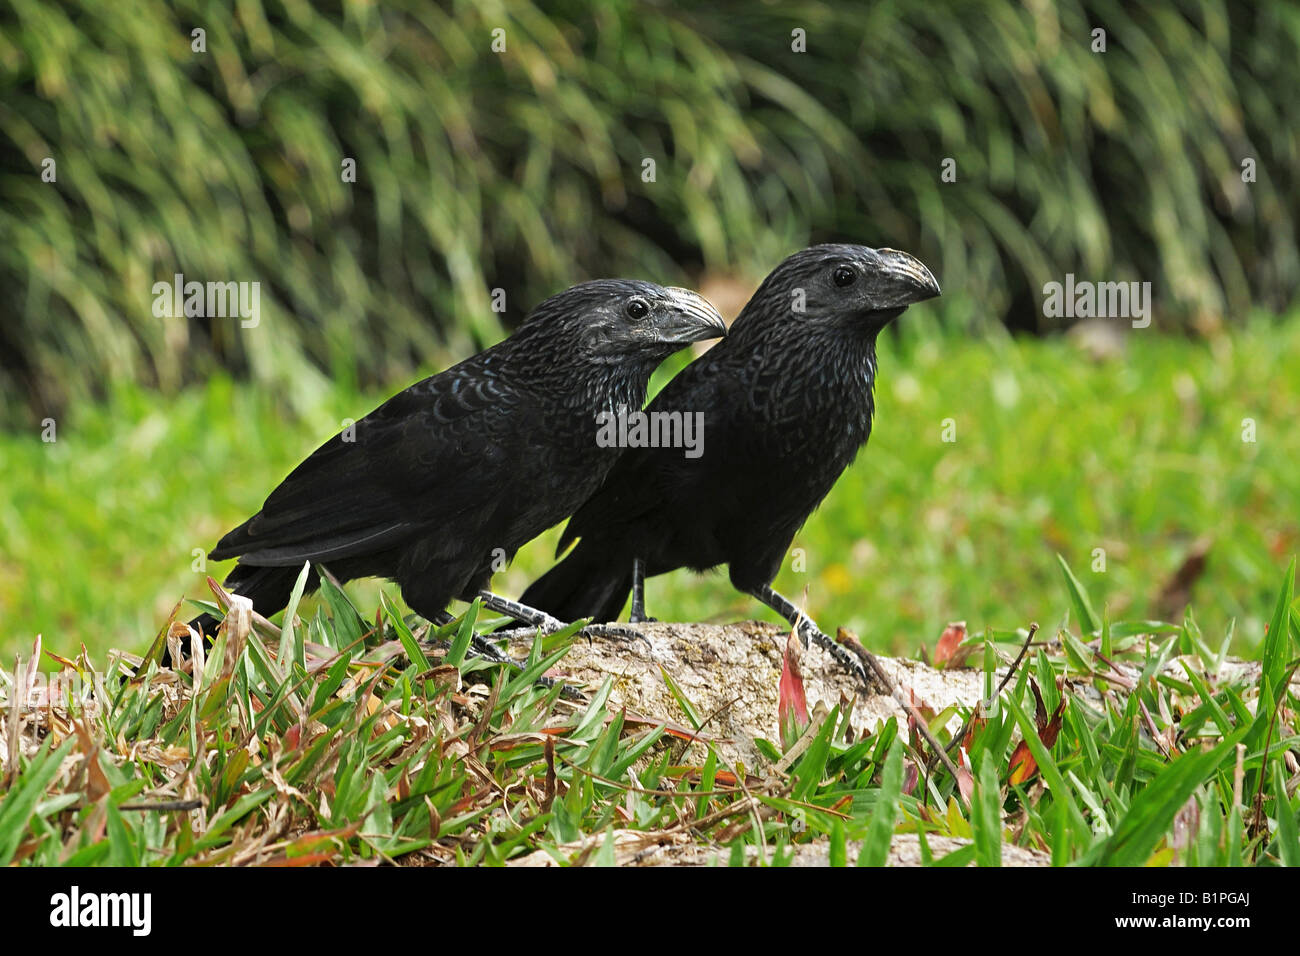 GROOVE BILLED ANI Crotophaga sulcirostris Pair on a trunk N W COSTA RICA - Stock Image